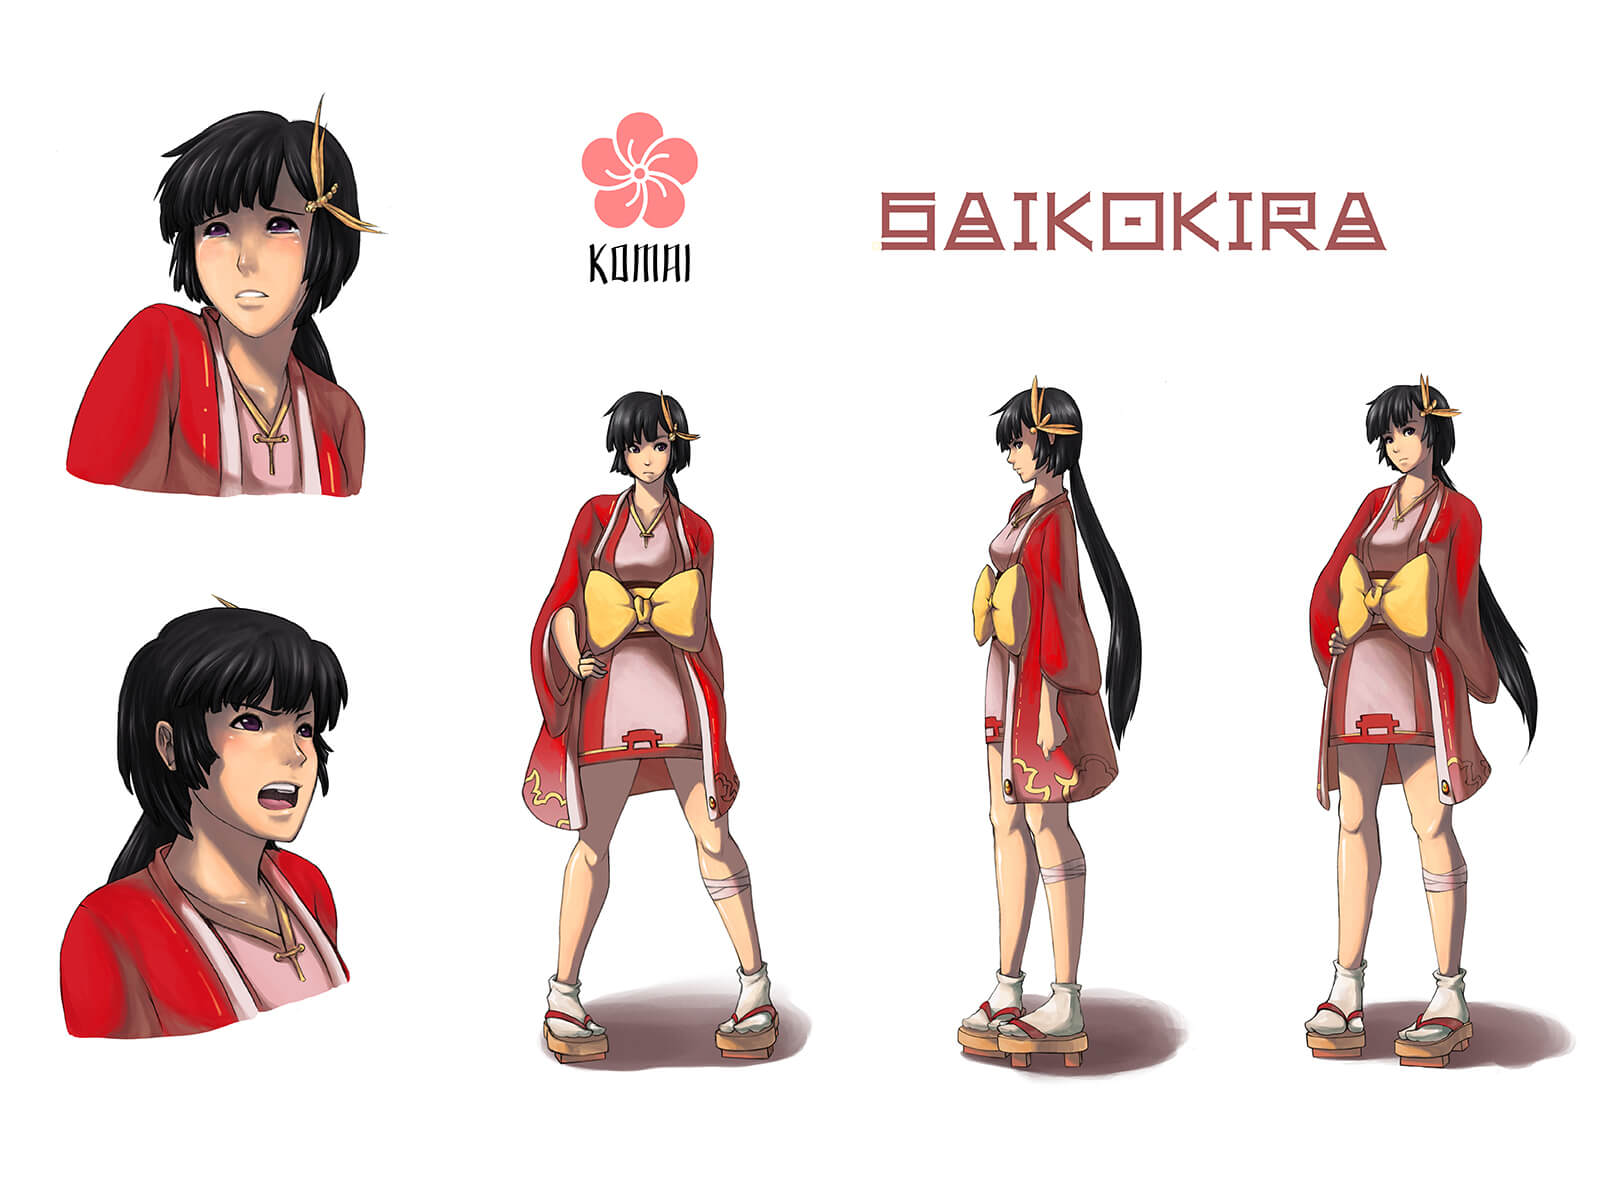 Concept art turnaround of a woman named Komai in various poses wearing short, red Japanese garb and geta footwear.